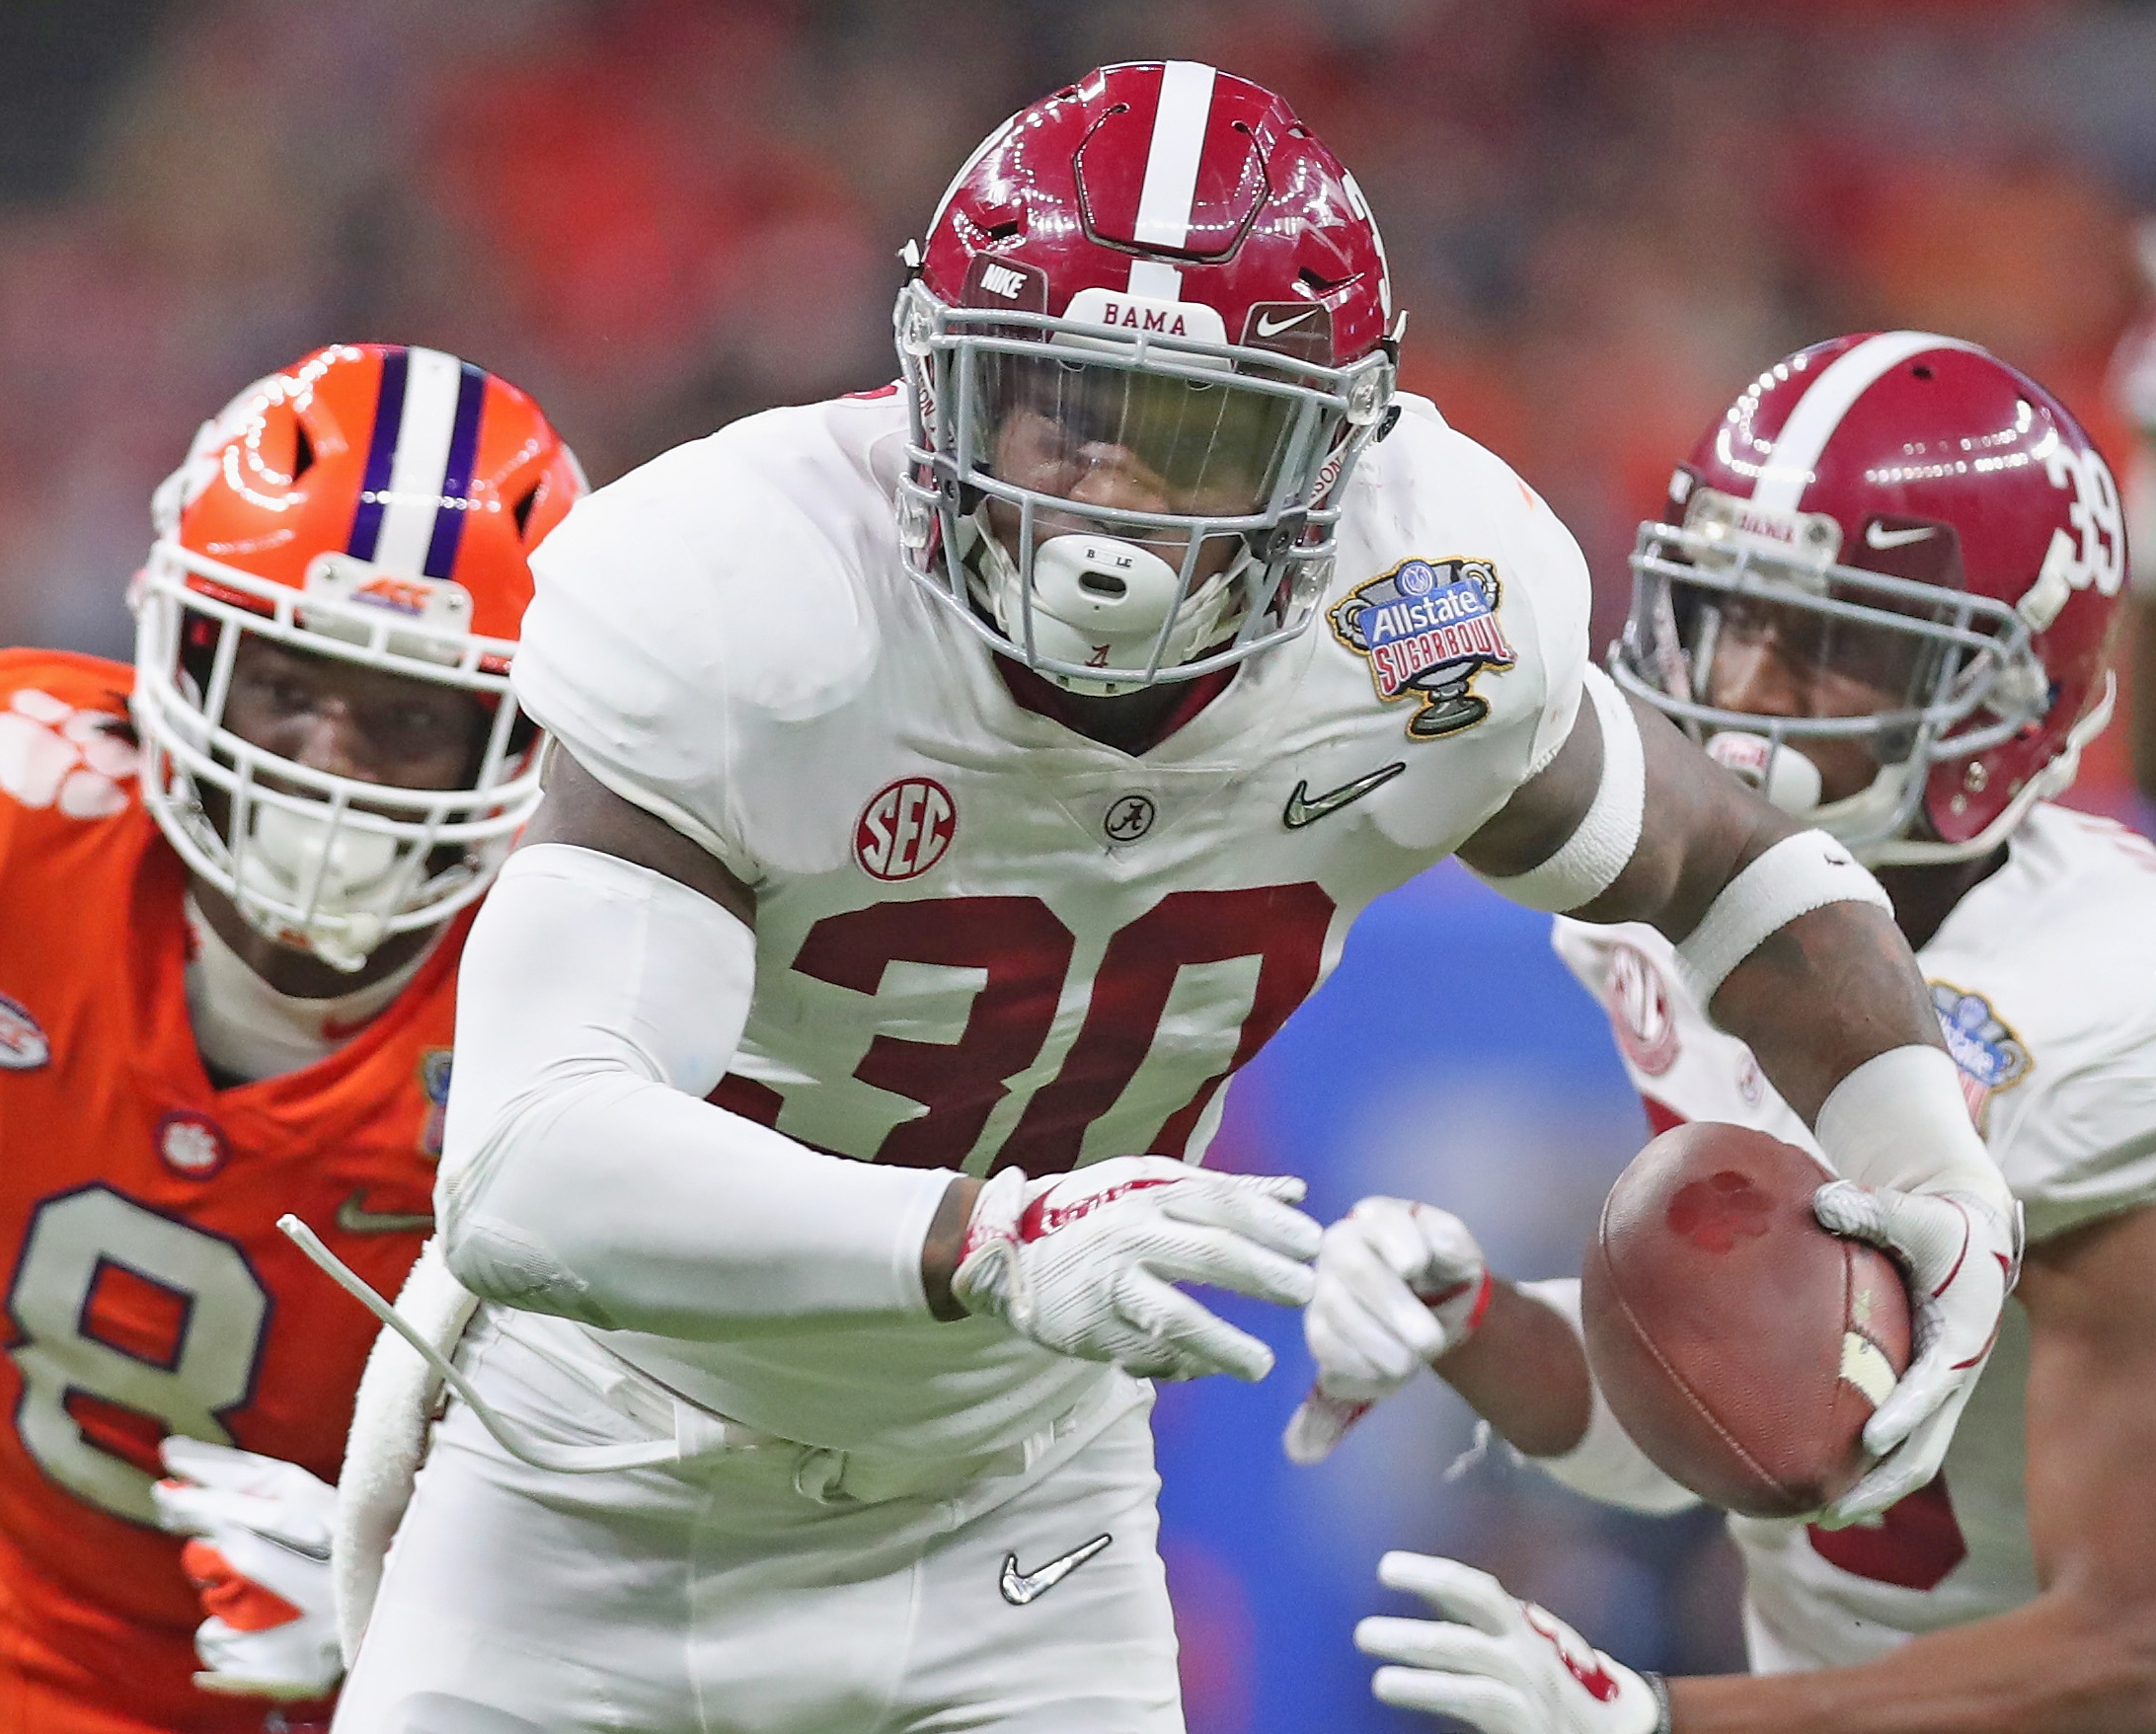 NFL Mock Draft 2019: Eagles land potential long-term starters in 2-round projection by NBC Sports | Do the moves make sense?